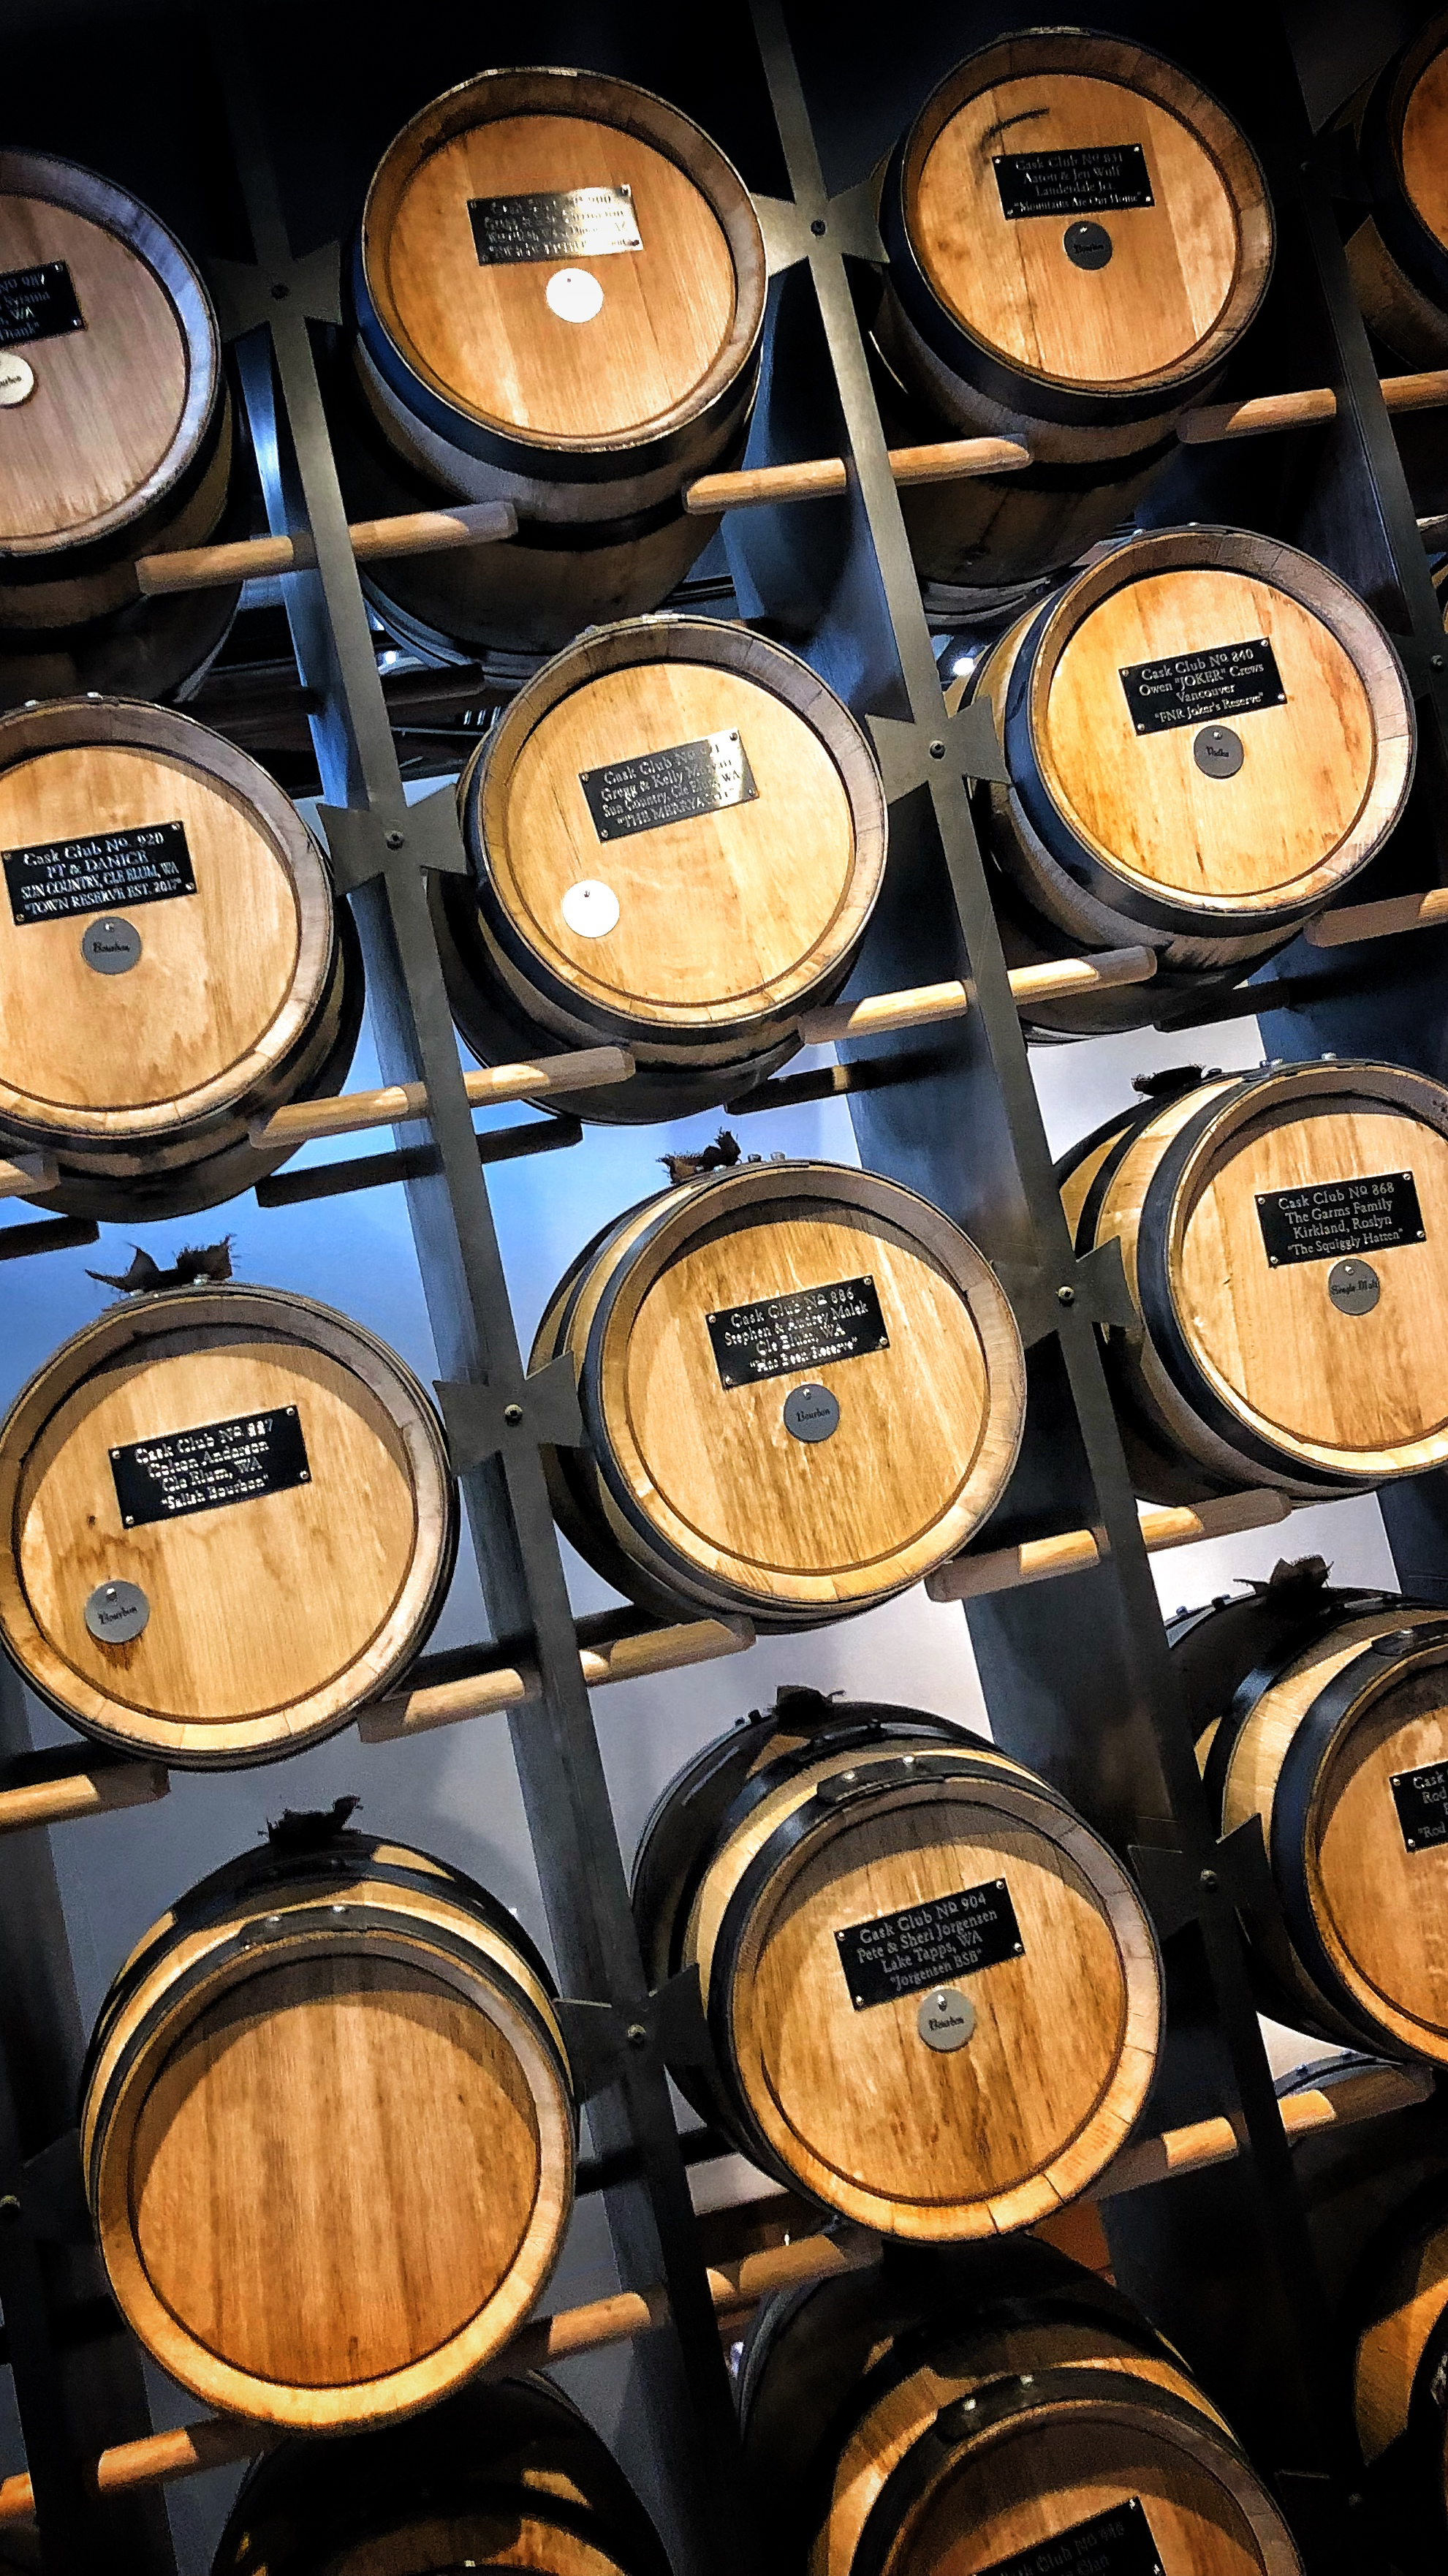 Heritage has a barrel program. Fill your own barrel and bottle it when it gets perfect for you. They'll even add a vanilla bean or orange peels if you want to try your hand at infusing.